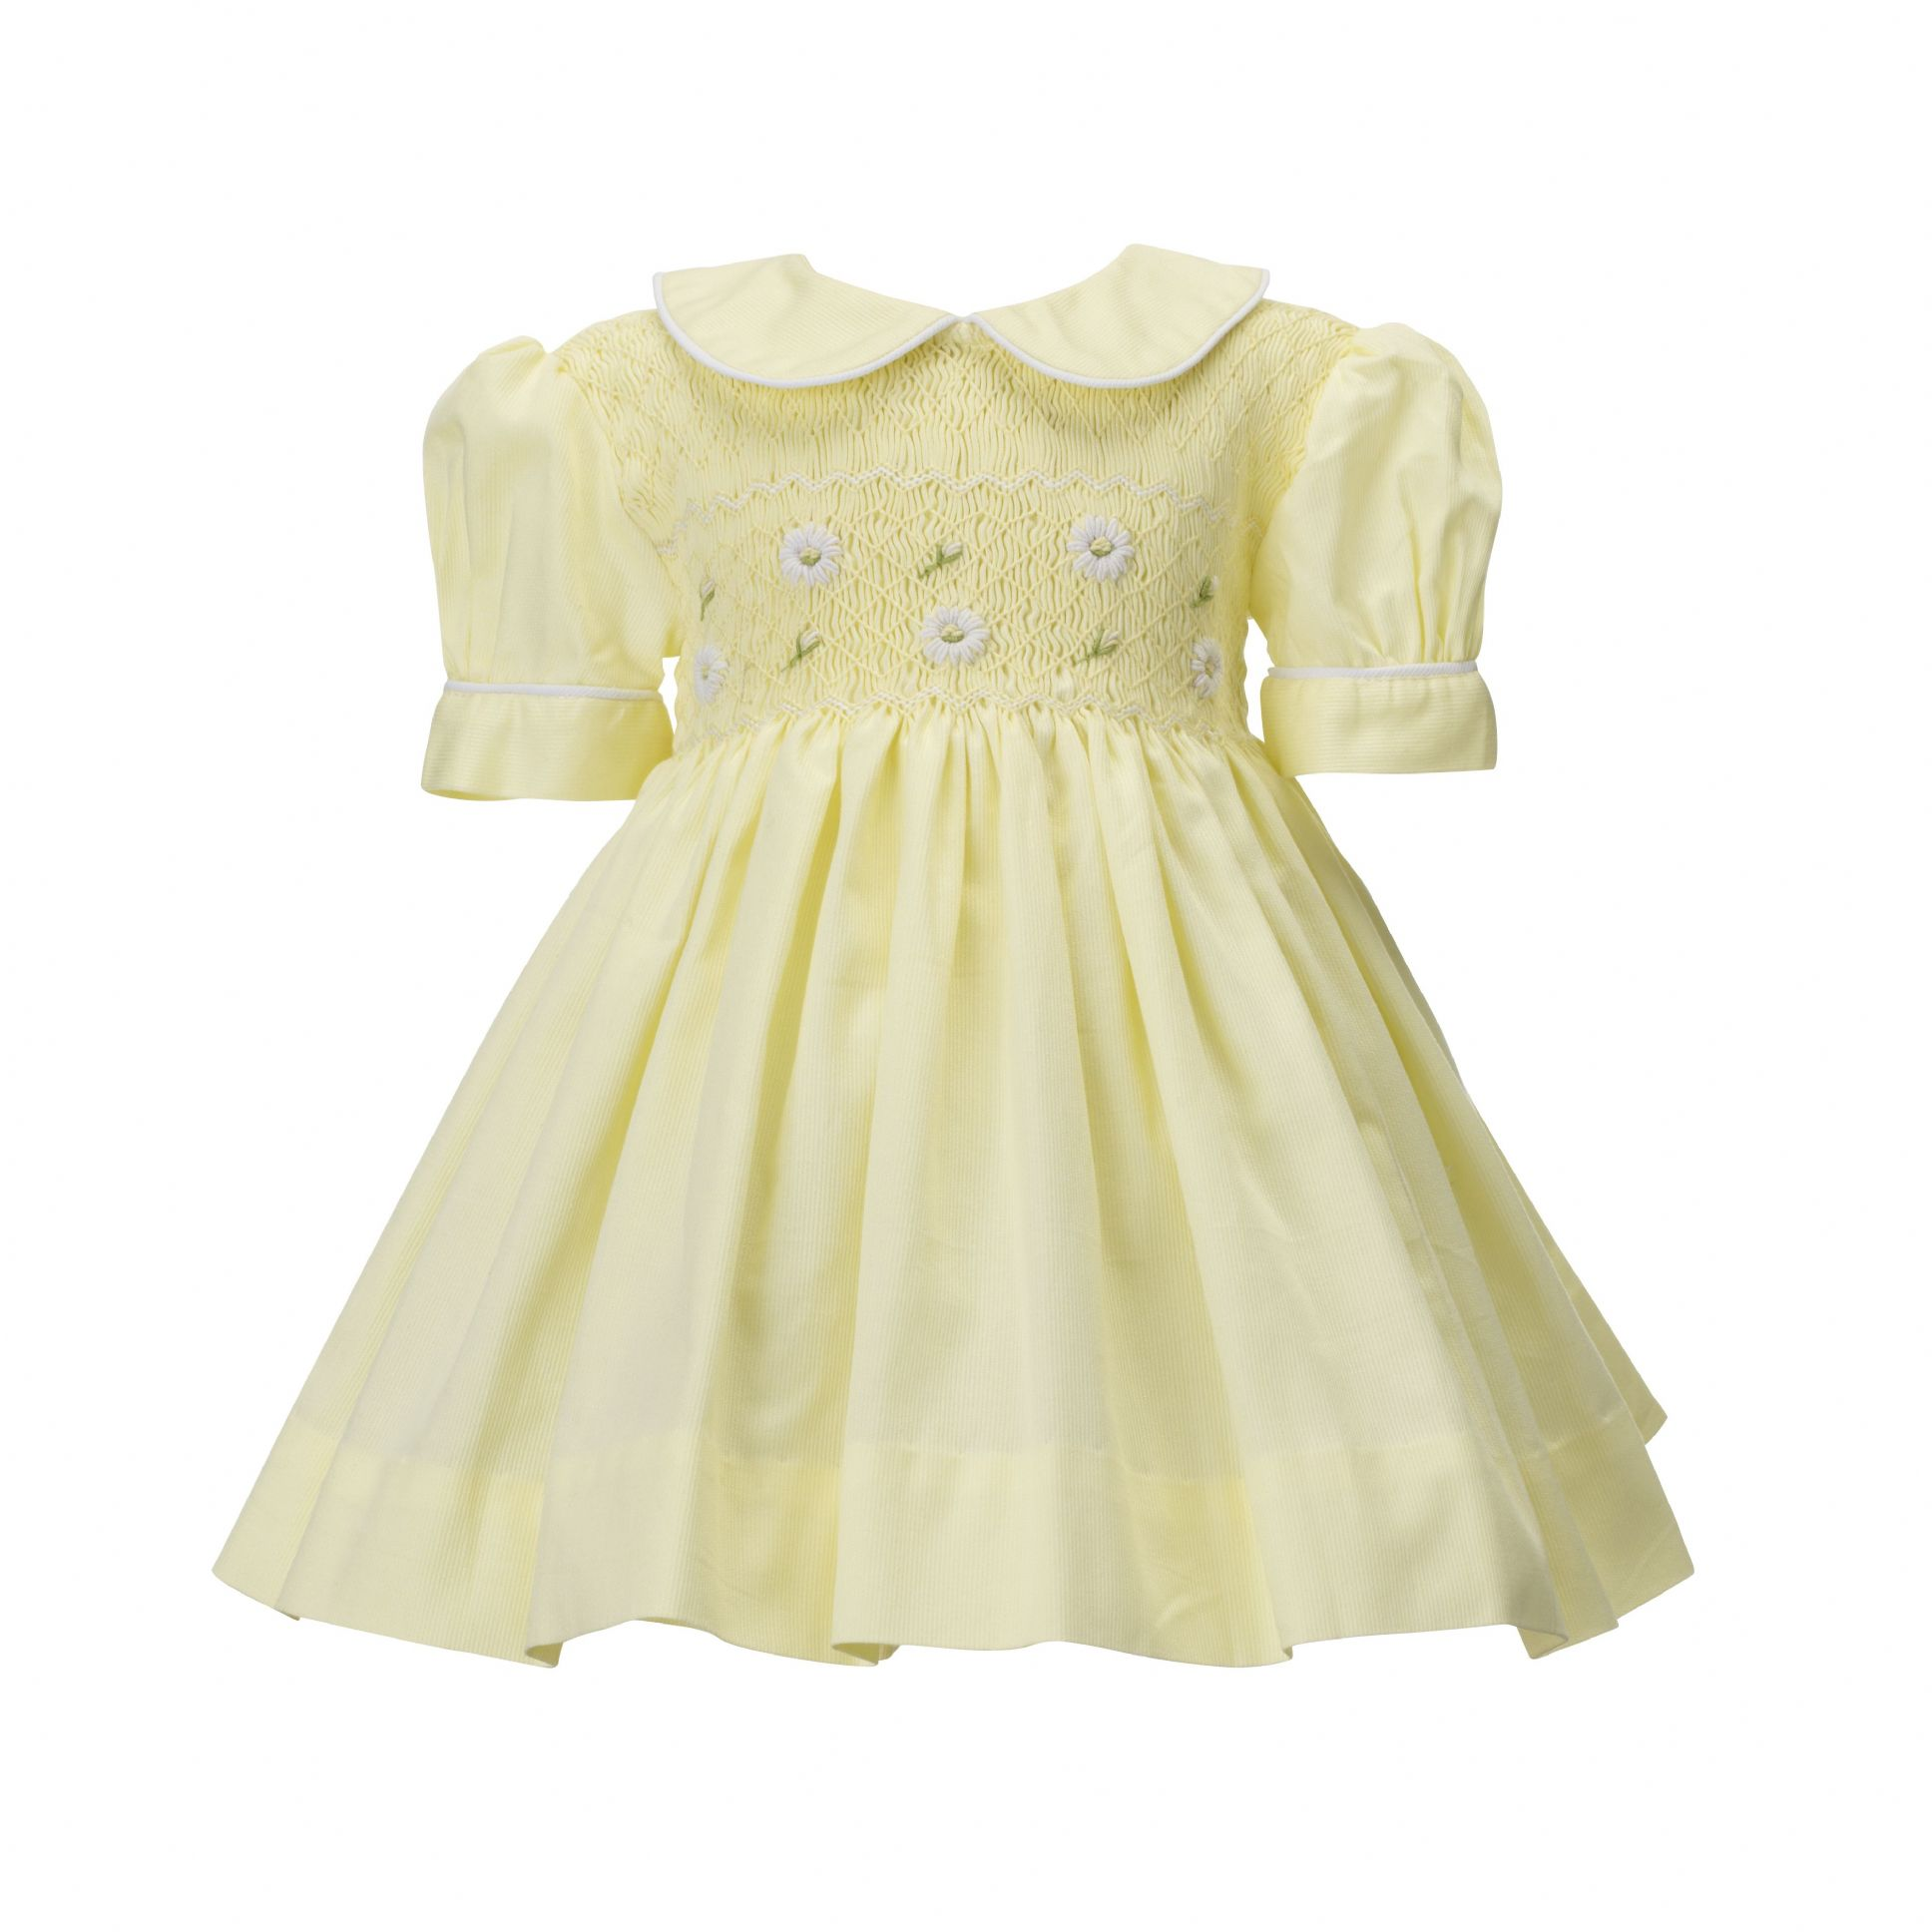 ce154eb84 Baby yellow hand smocked dress